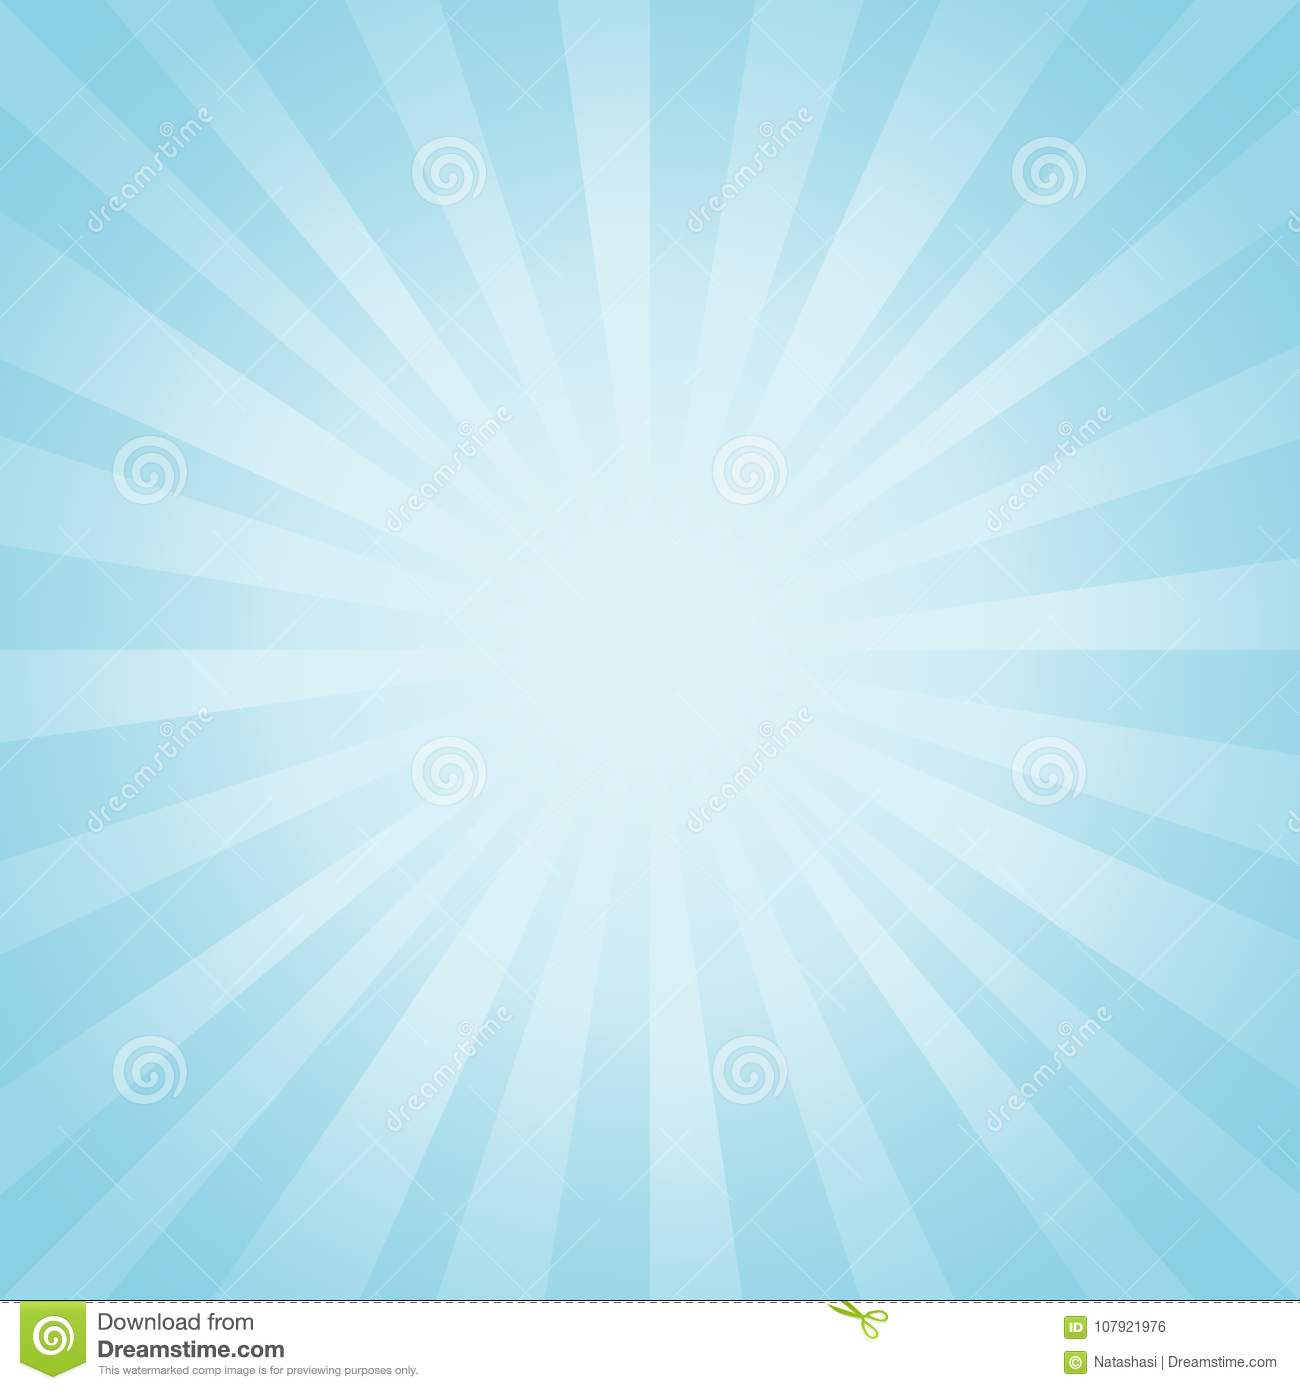 Abstract background. Soft light Blue rays background. Vector EPS 10 cmyk